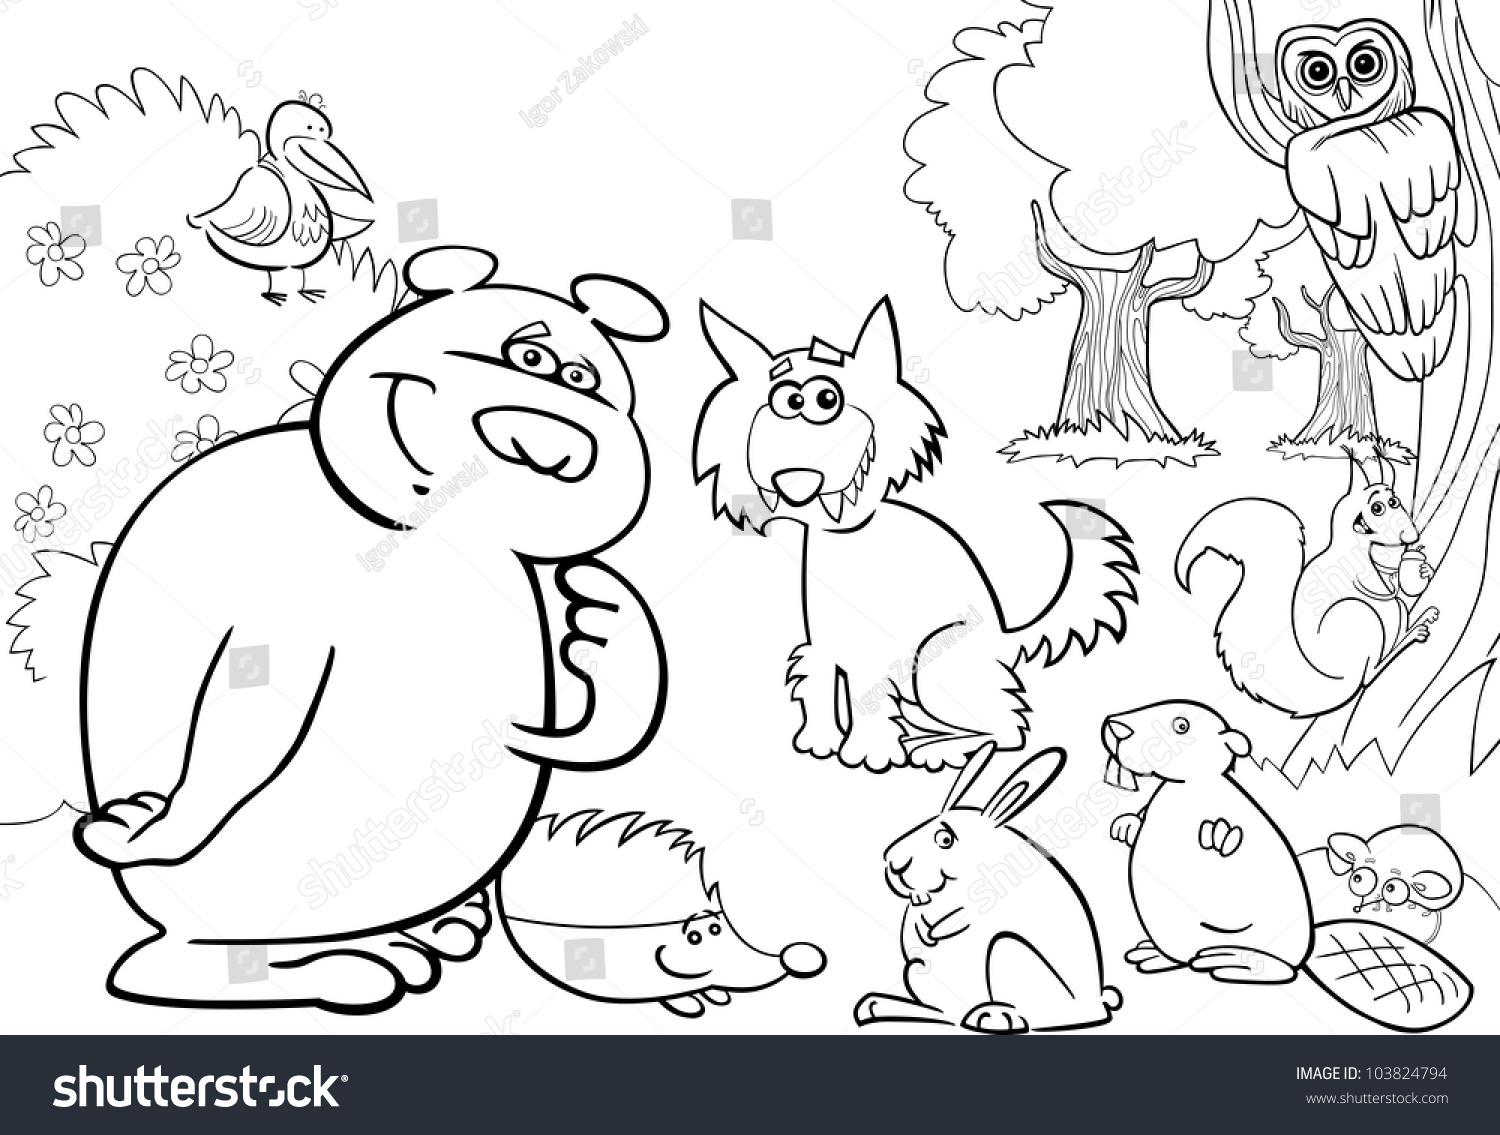 Cartoon Illustration Of Wild Forest Animals For Coloring Book